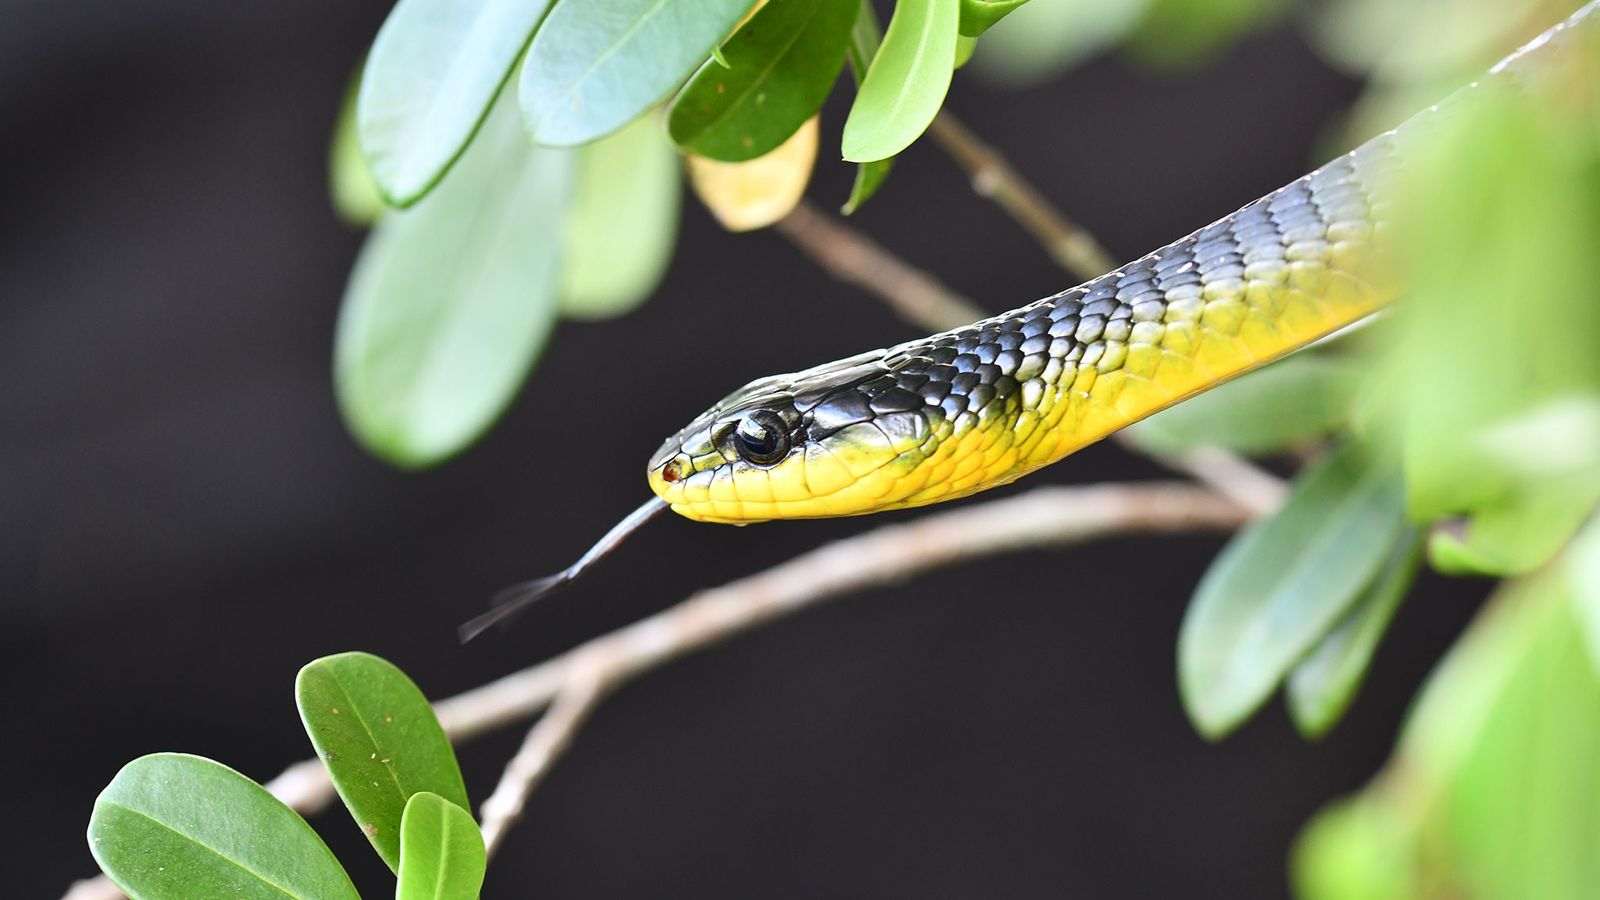 A common tree snake in the genus Dendrelaphis basks in the sun between research trials.